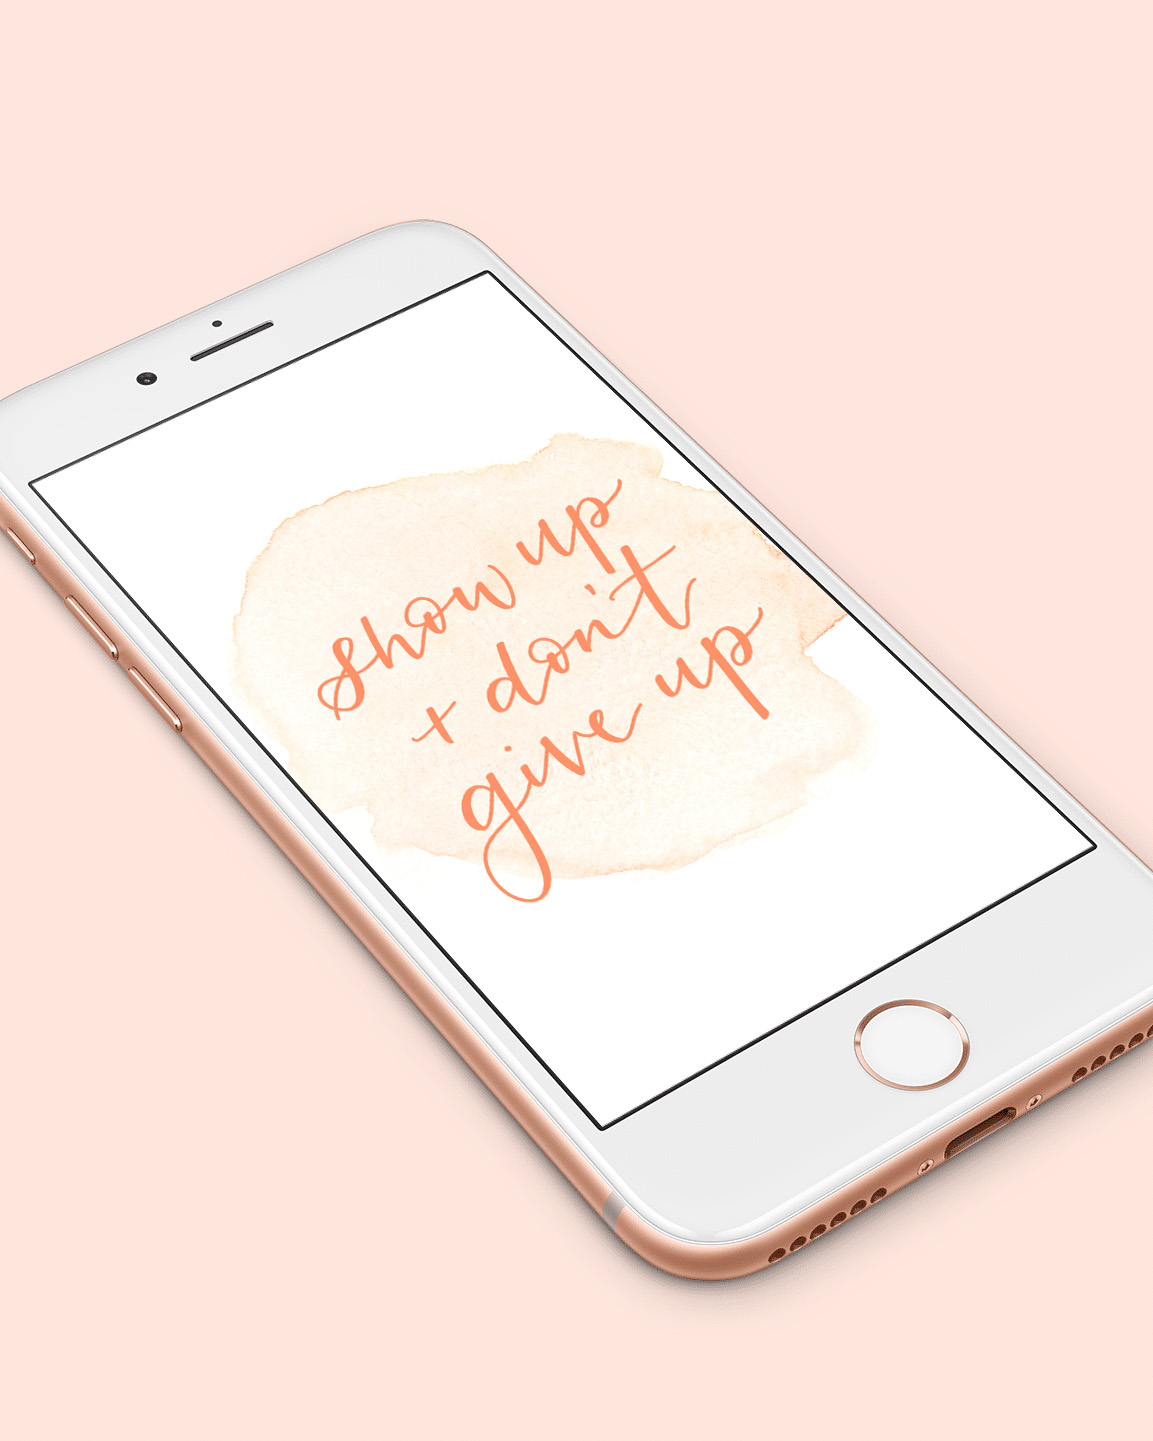 shop amy zhang | july free phone wallpaper | motivational quote wallpaper